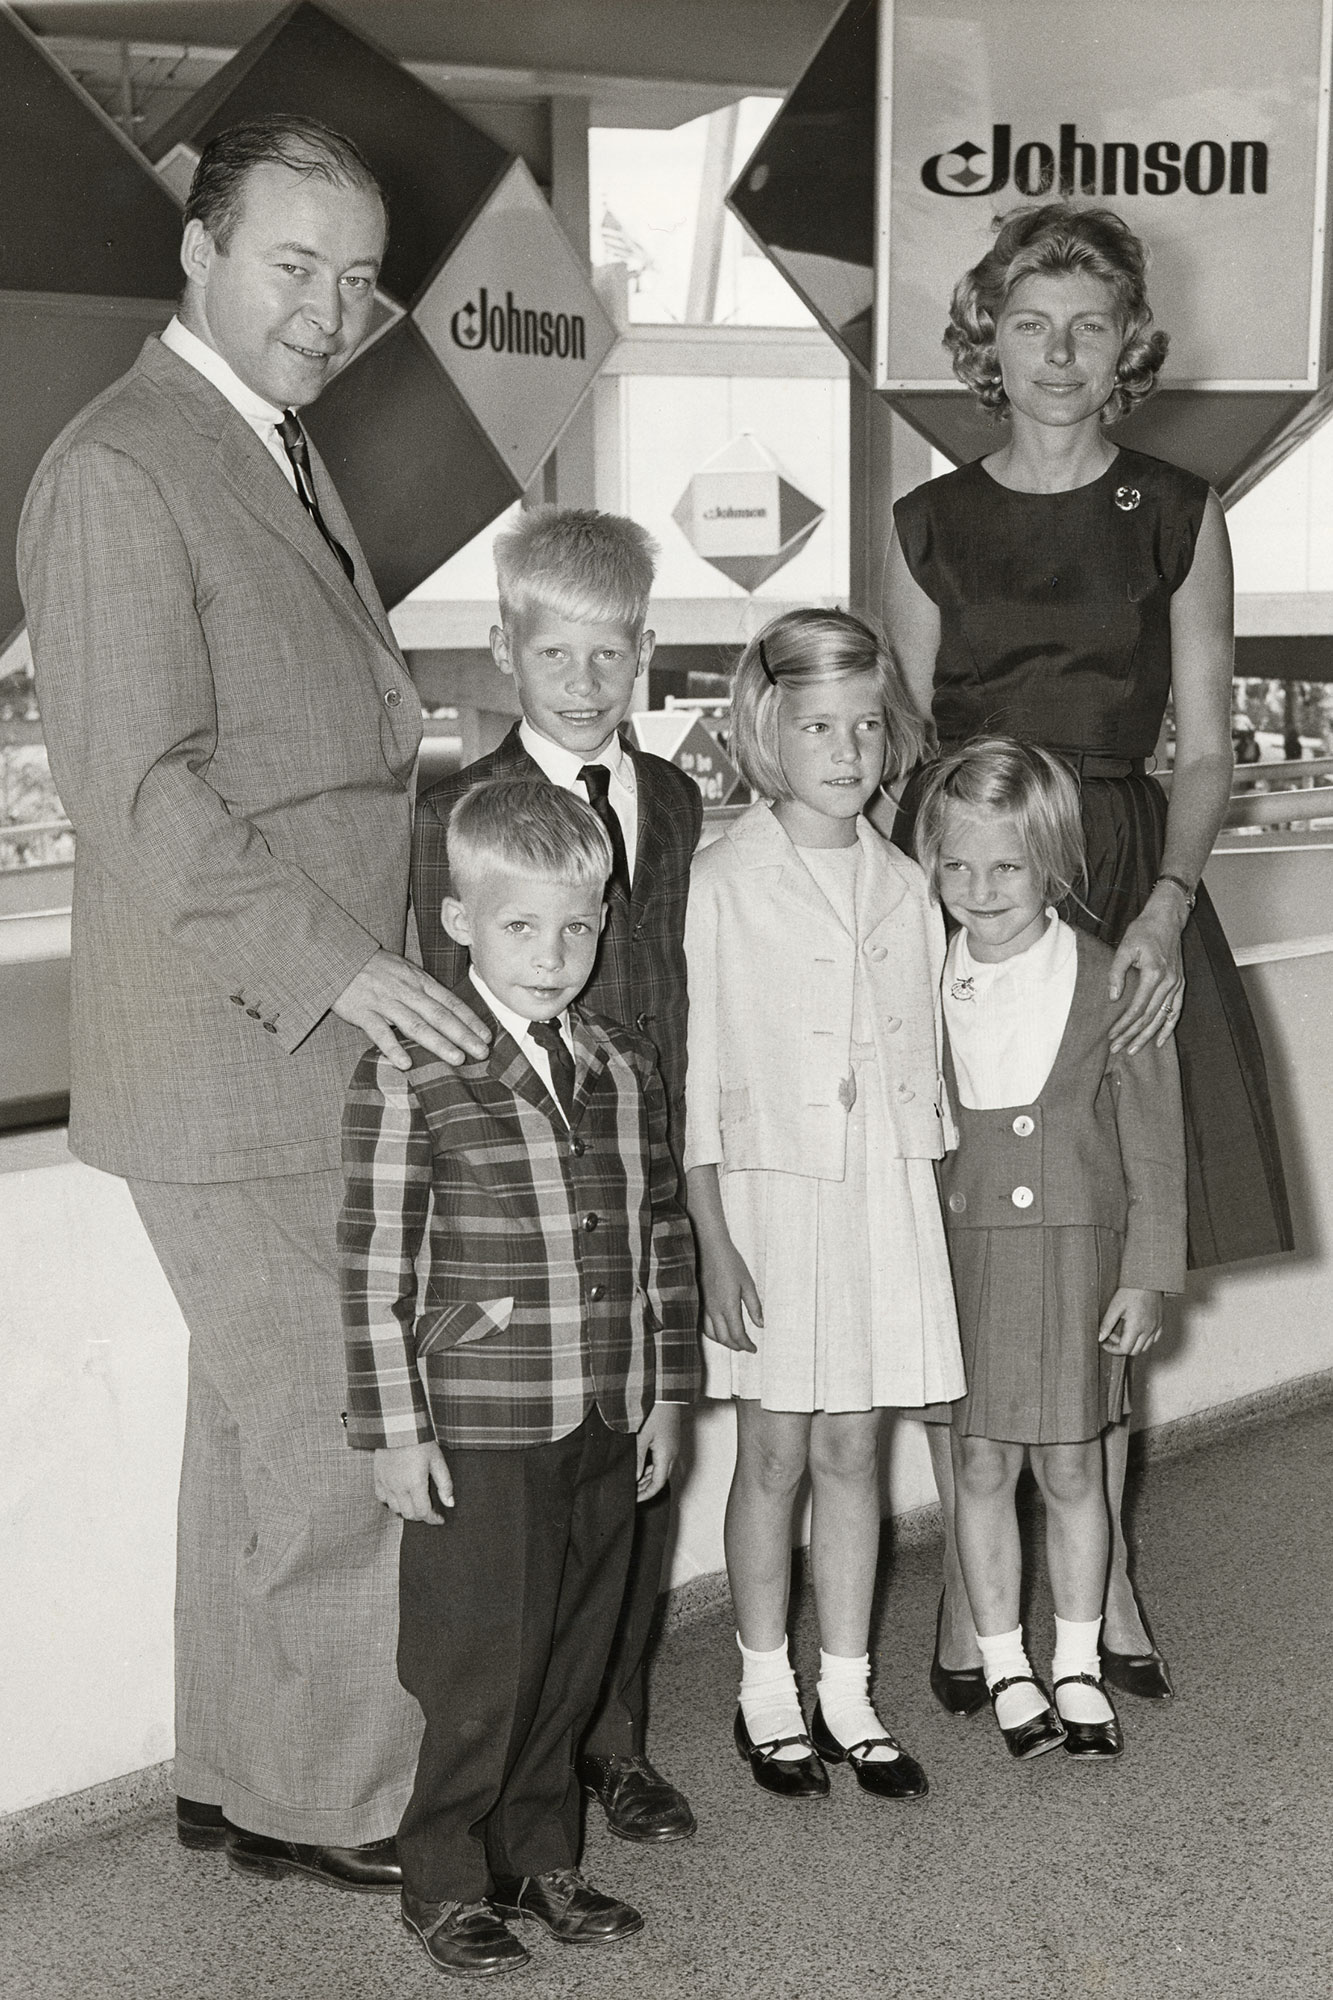 Imogene Johnson with Samuel C Johnson and children at the 1964 World's Fair